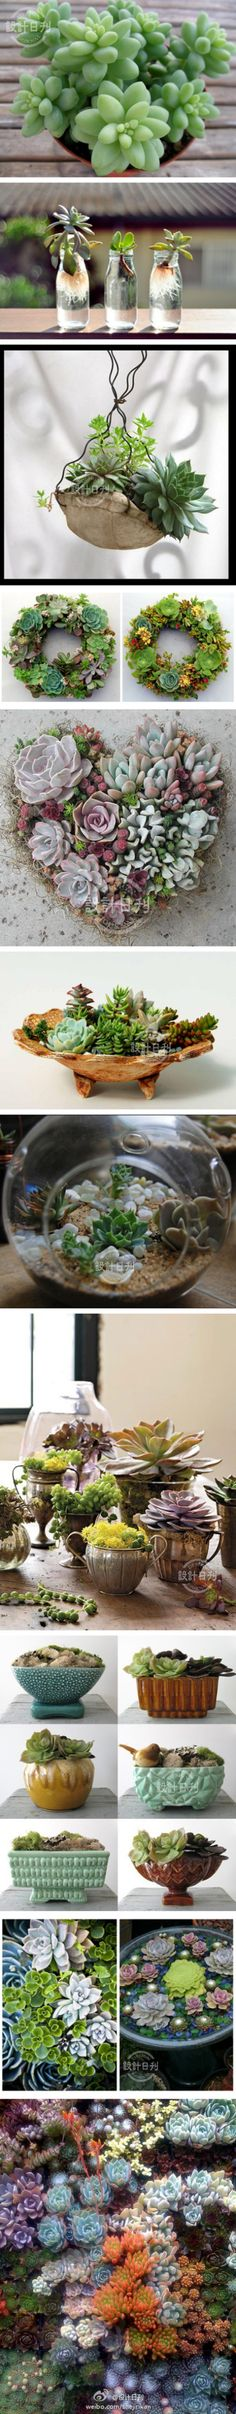 Succulents! by weibo.com/shejirikan  #Succulents @Liz Mester Mester Mester Harrison